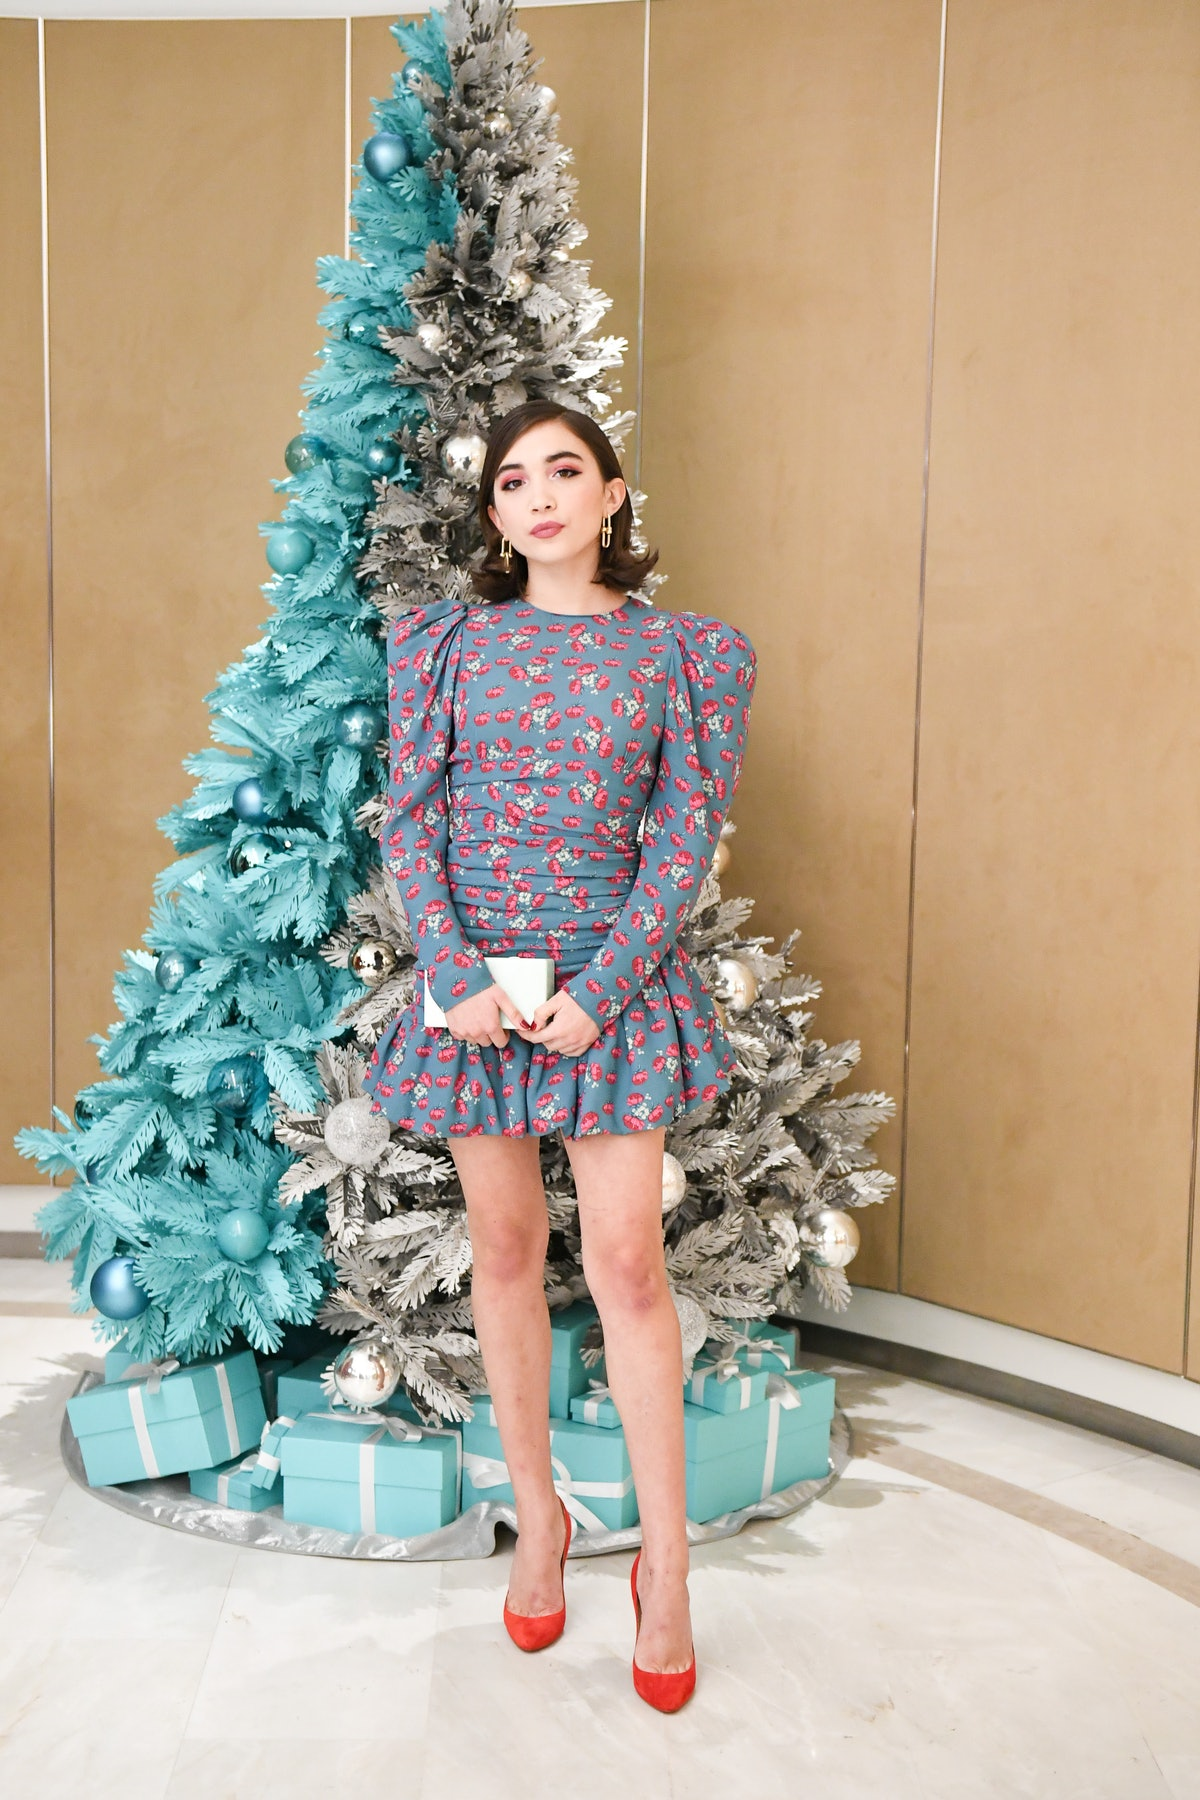 Tiffany & Co. Celebrates the Holidays: with a Girls Night In